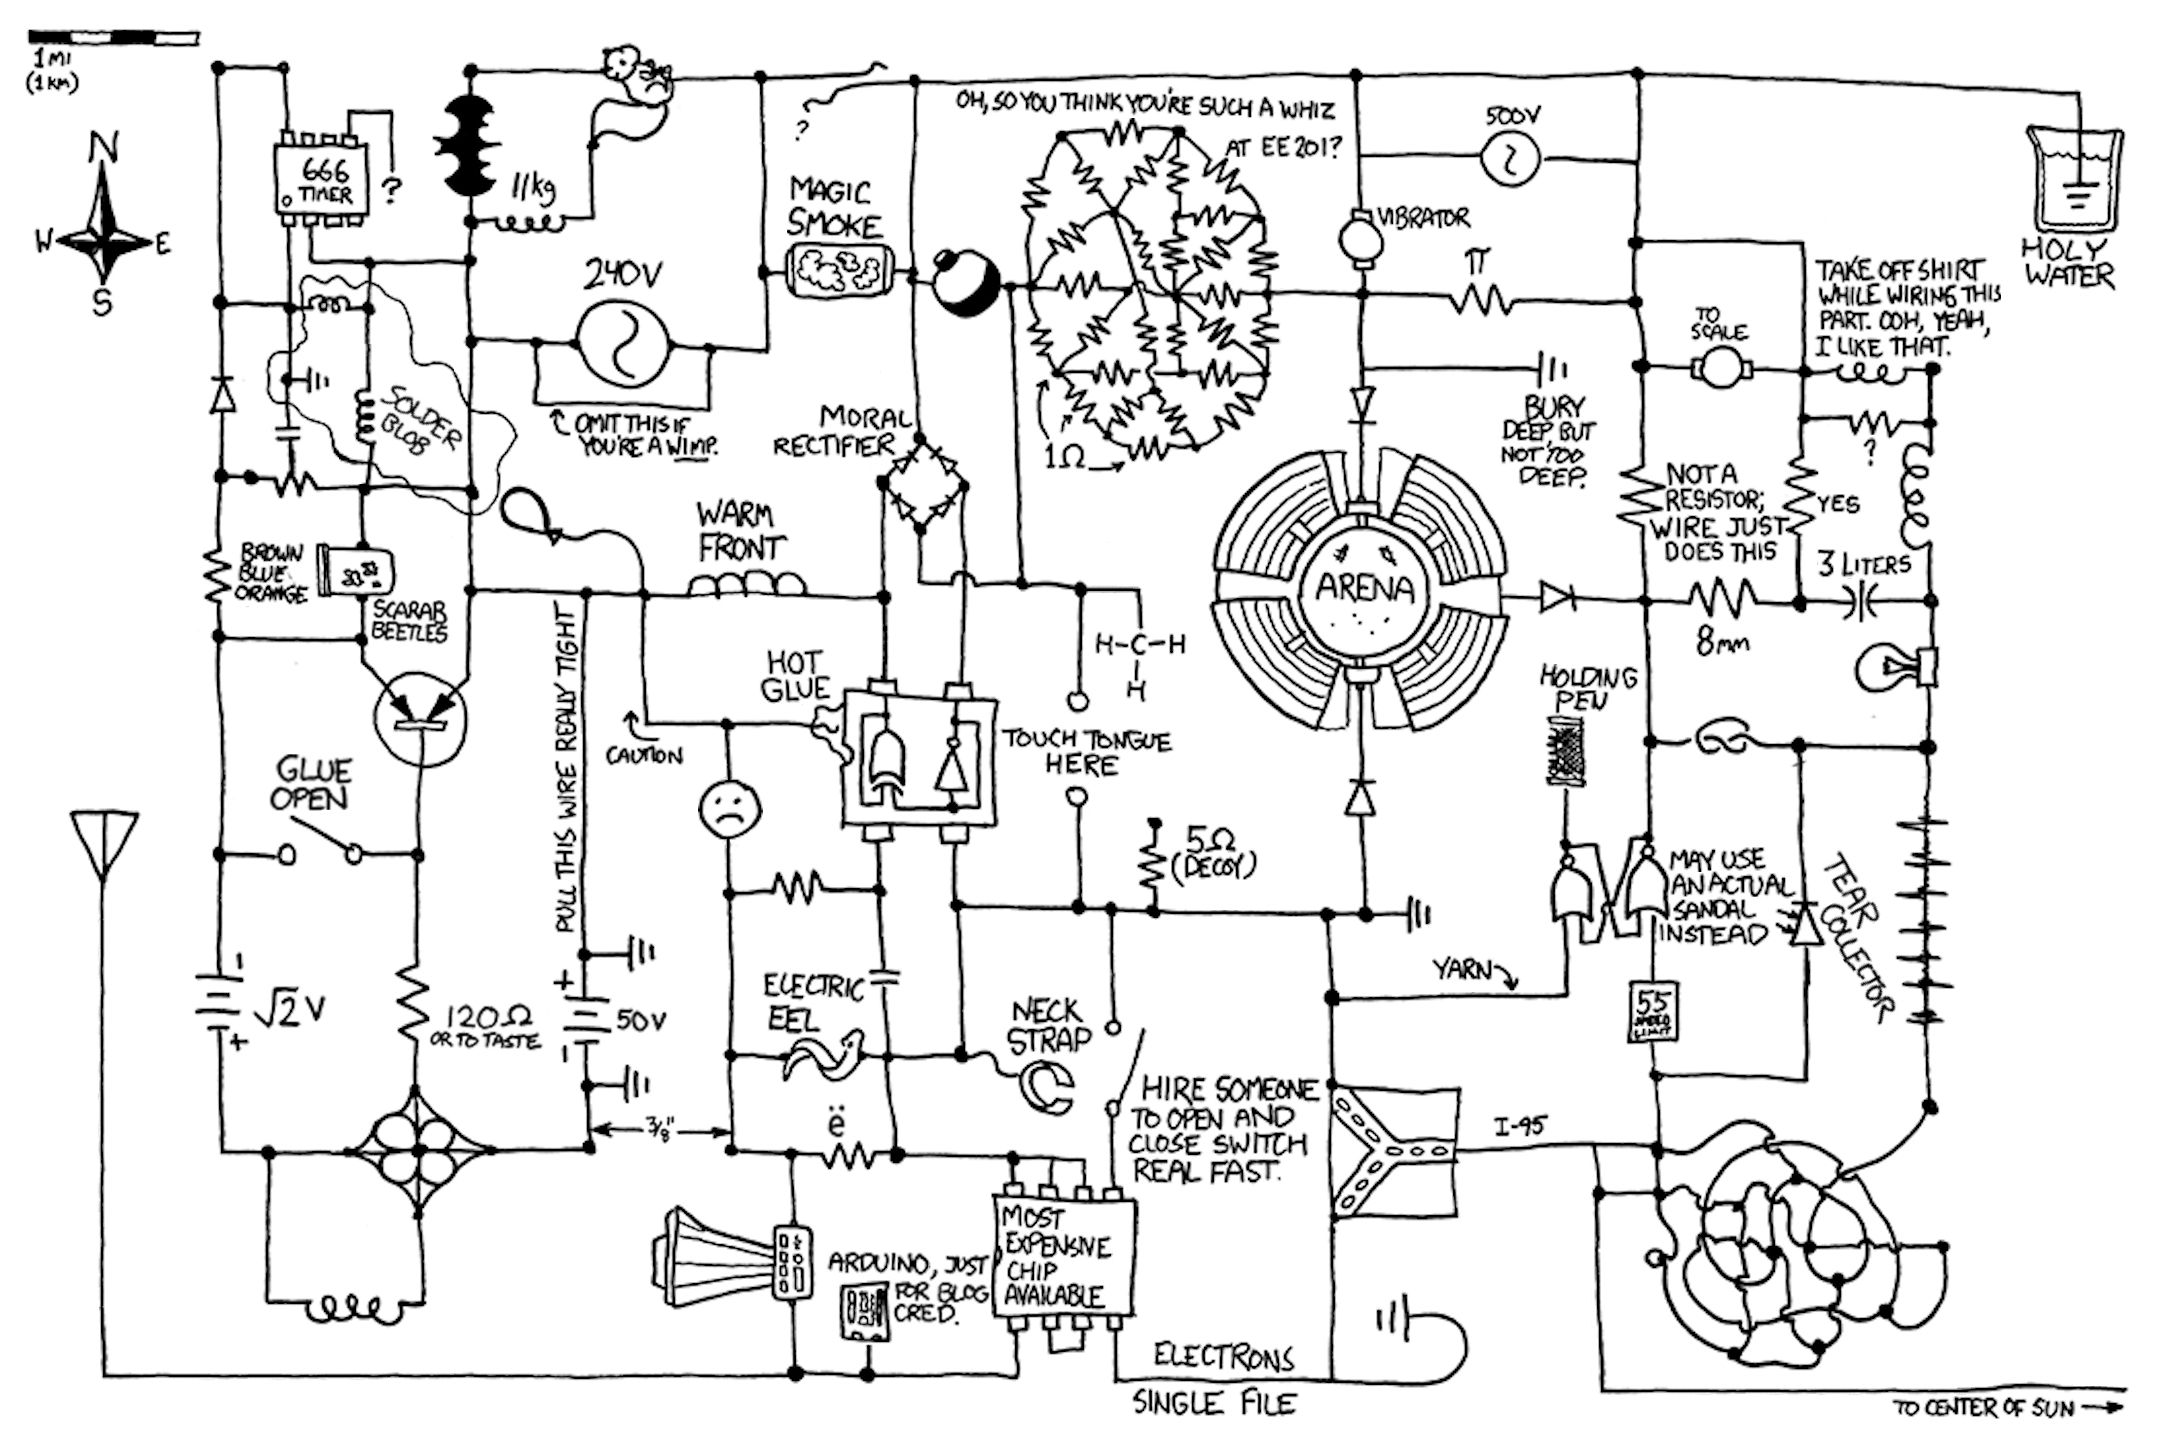 small resolution of i rotated all of the text in circuit diagram xkcd 730 so it can be wiring diagram xjcd online